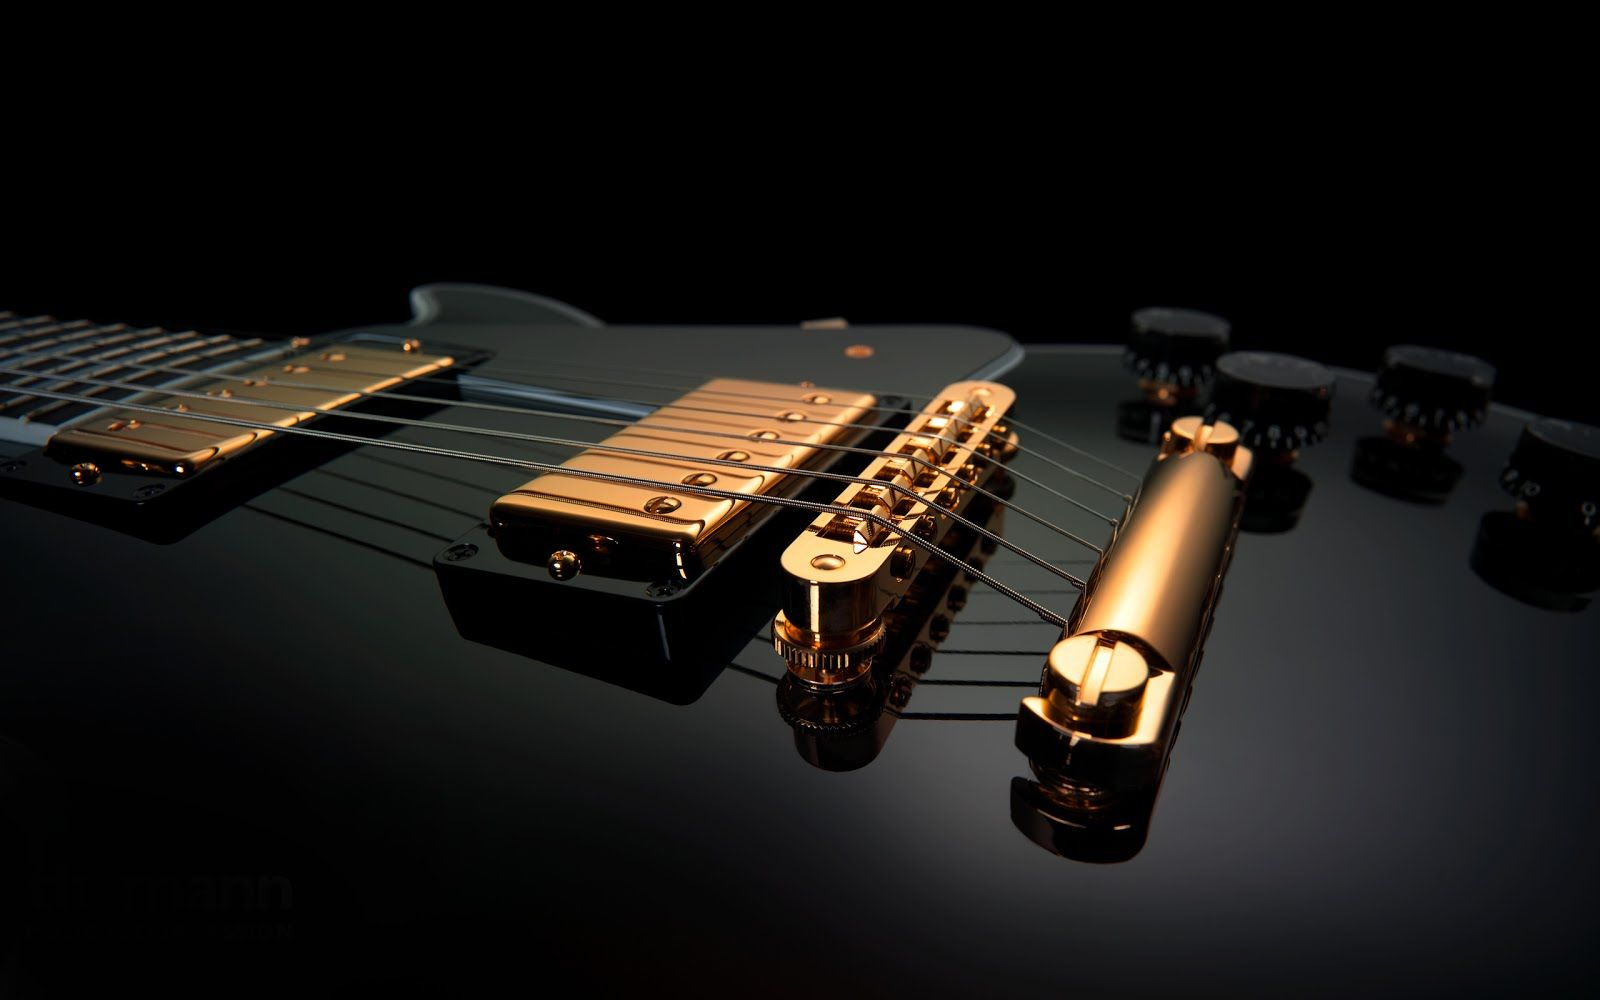 guitar hd wallpaper for tablet, ipad, iphone, android, especially